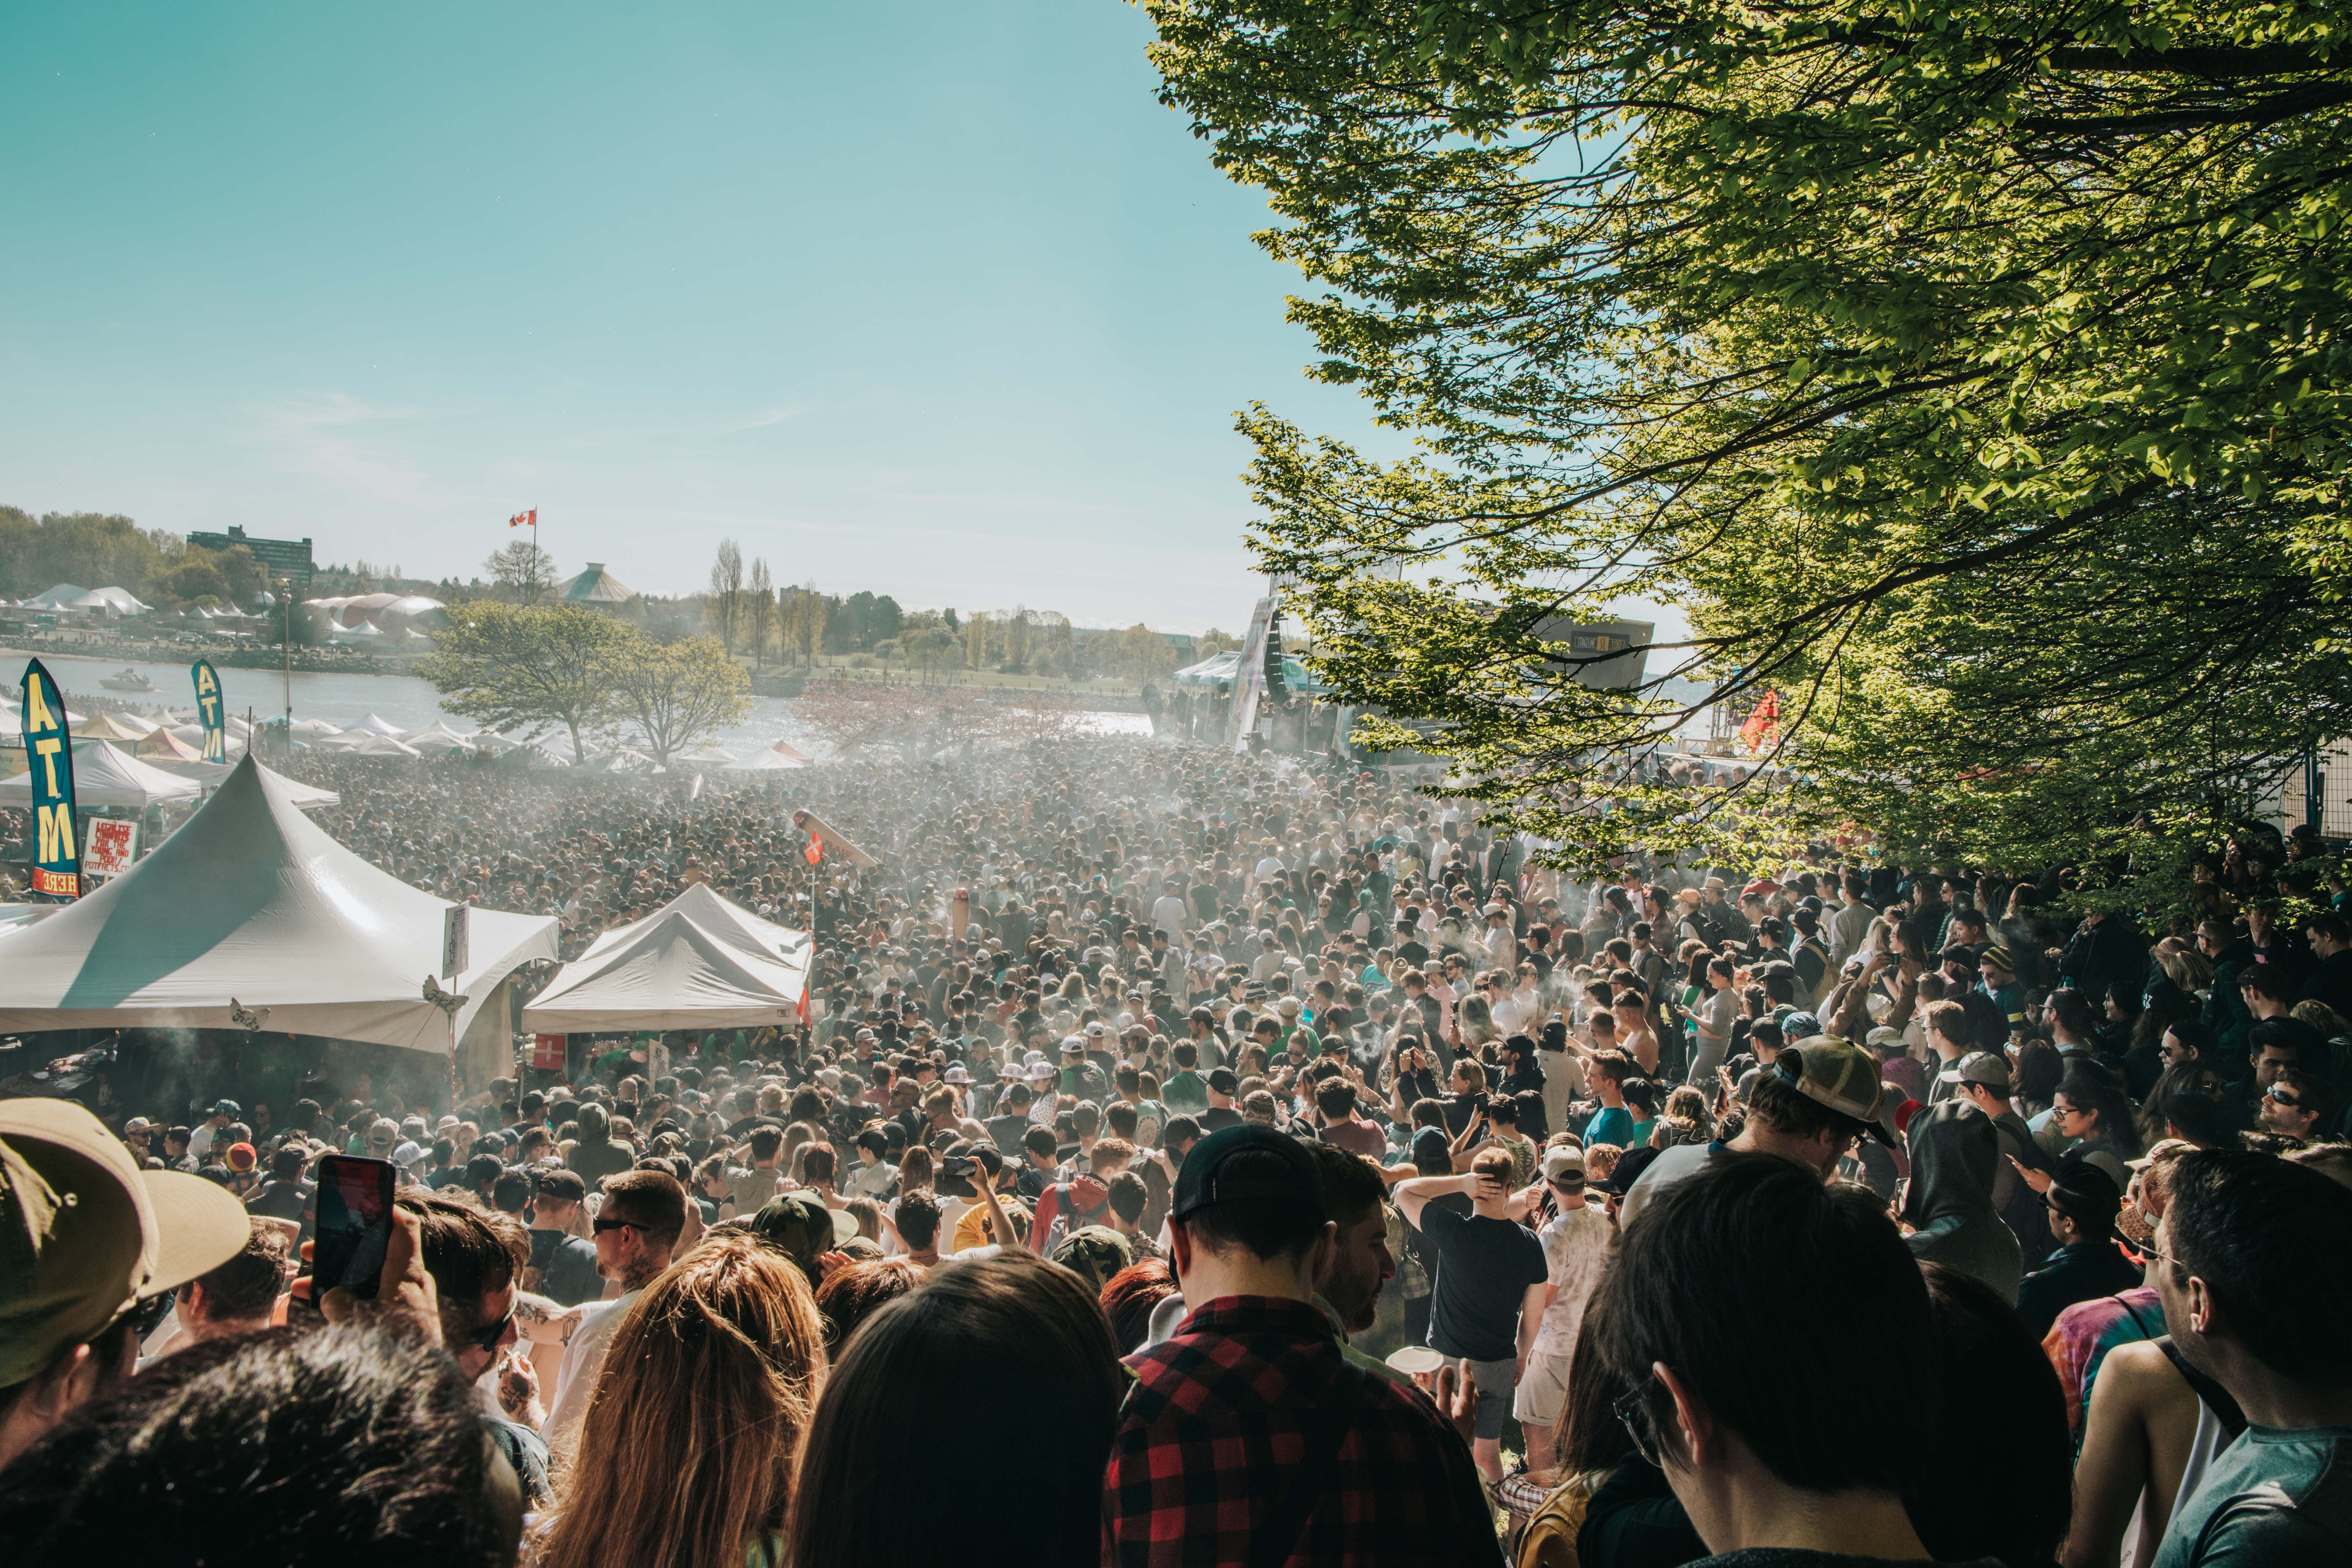 420 in Vancouver: The World's Largest Cannabis Celebration